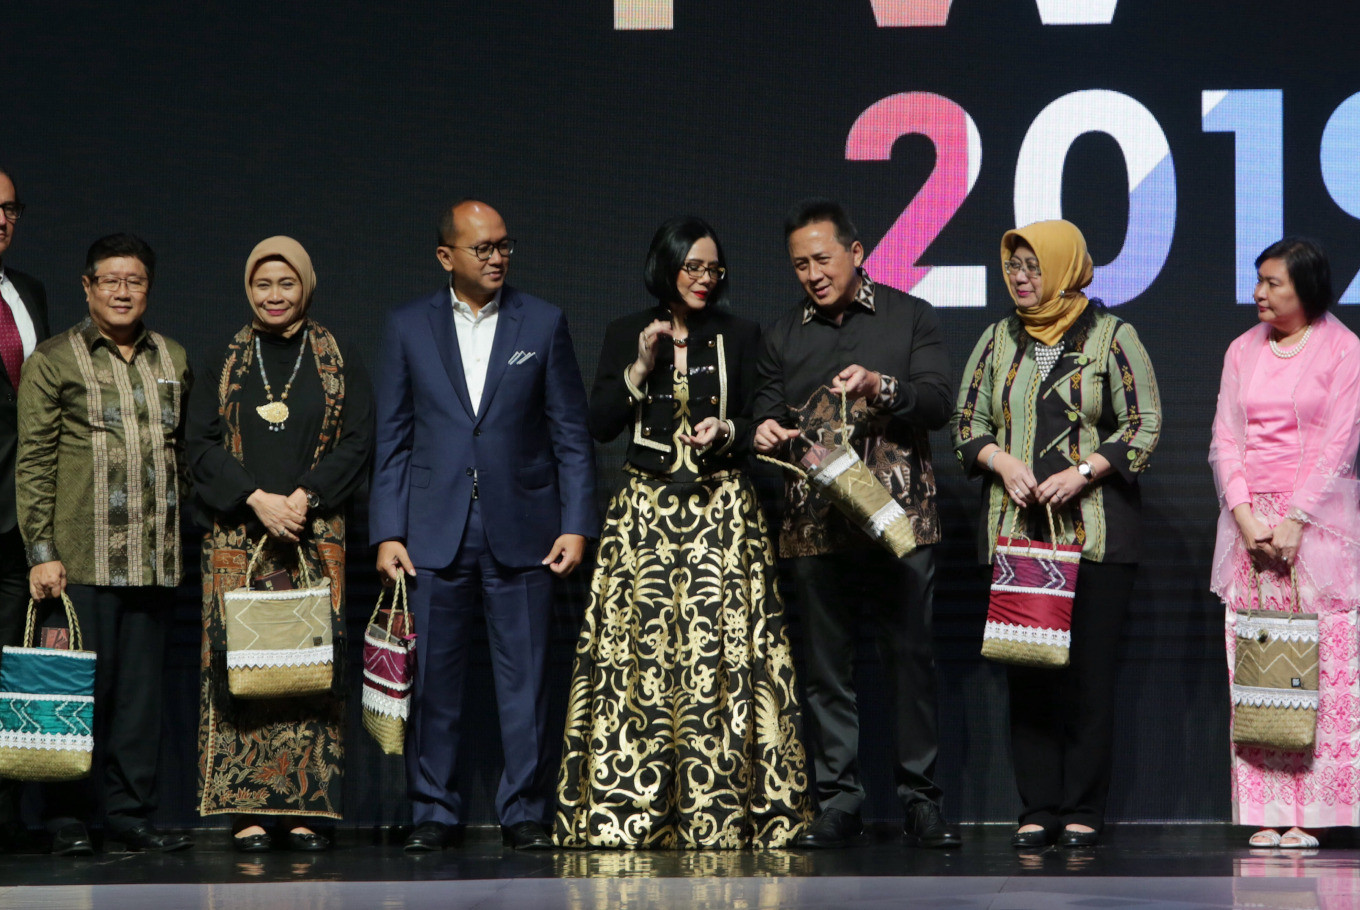 President of Indonesia Fashion Week (IFW) Poppy Dharsono (center) poses with Creative Economy Agency (Bekraf) head Triawan Munaf at the opening ceremony of IFW 2019 at the Jakarta Convention Center in Central Jakarta on Wednesday.